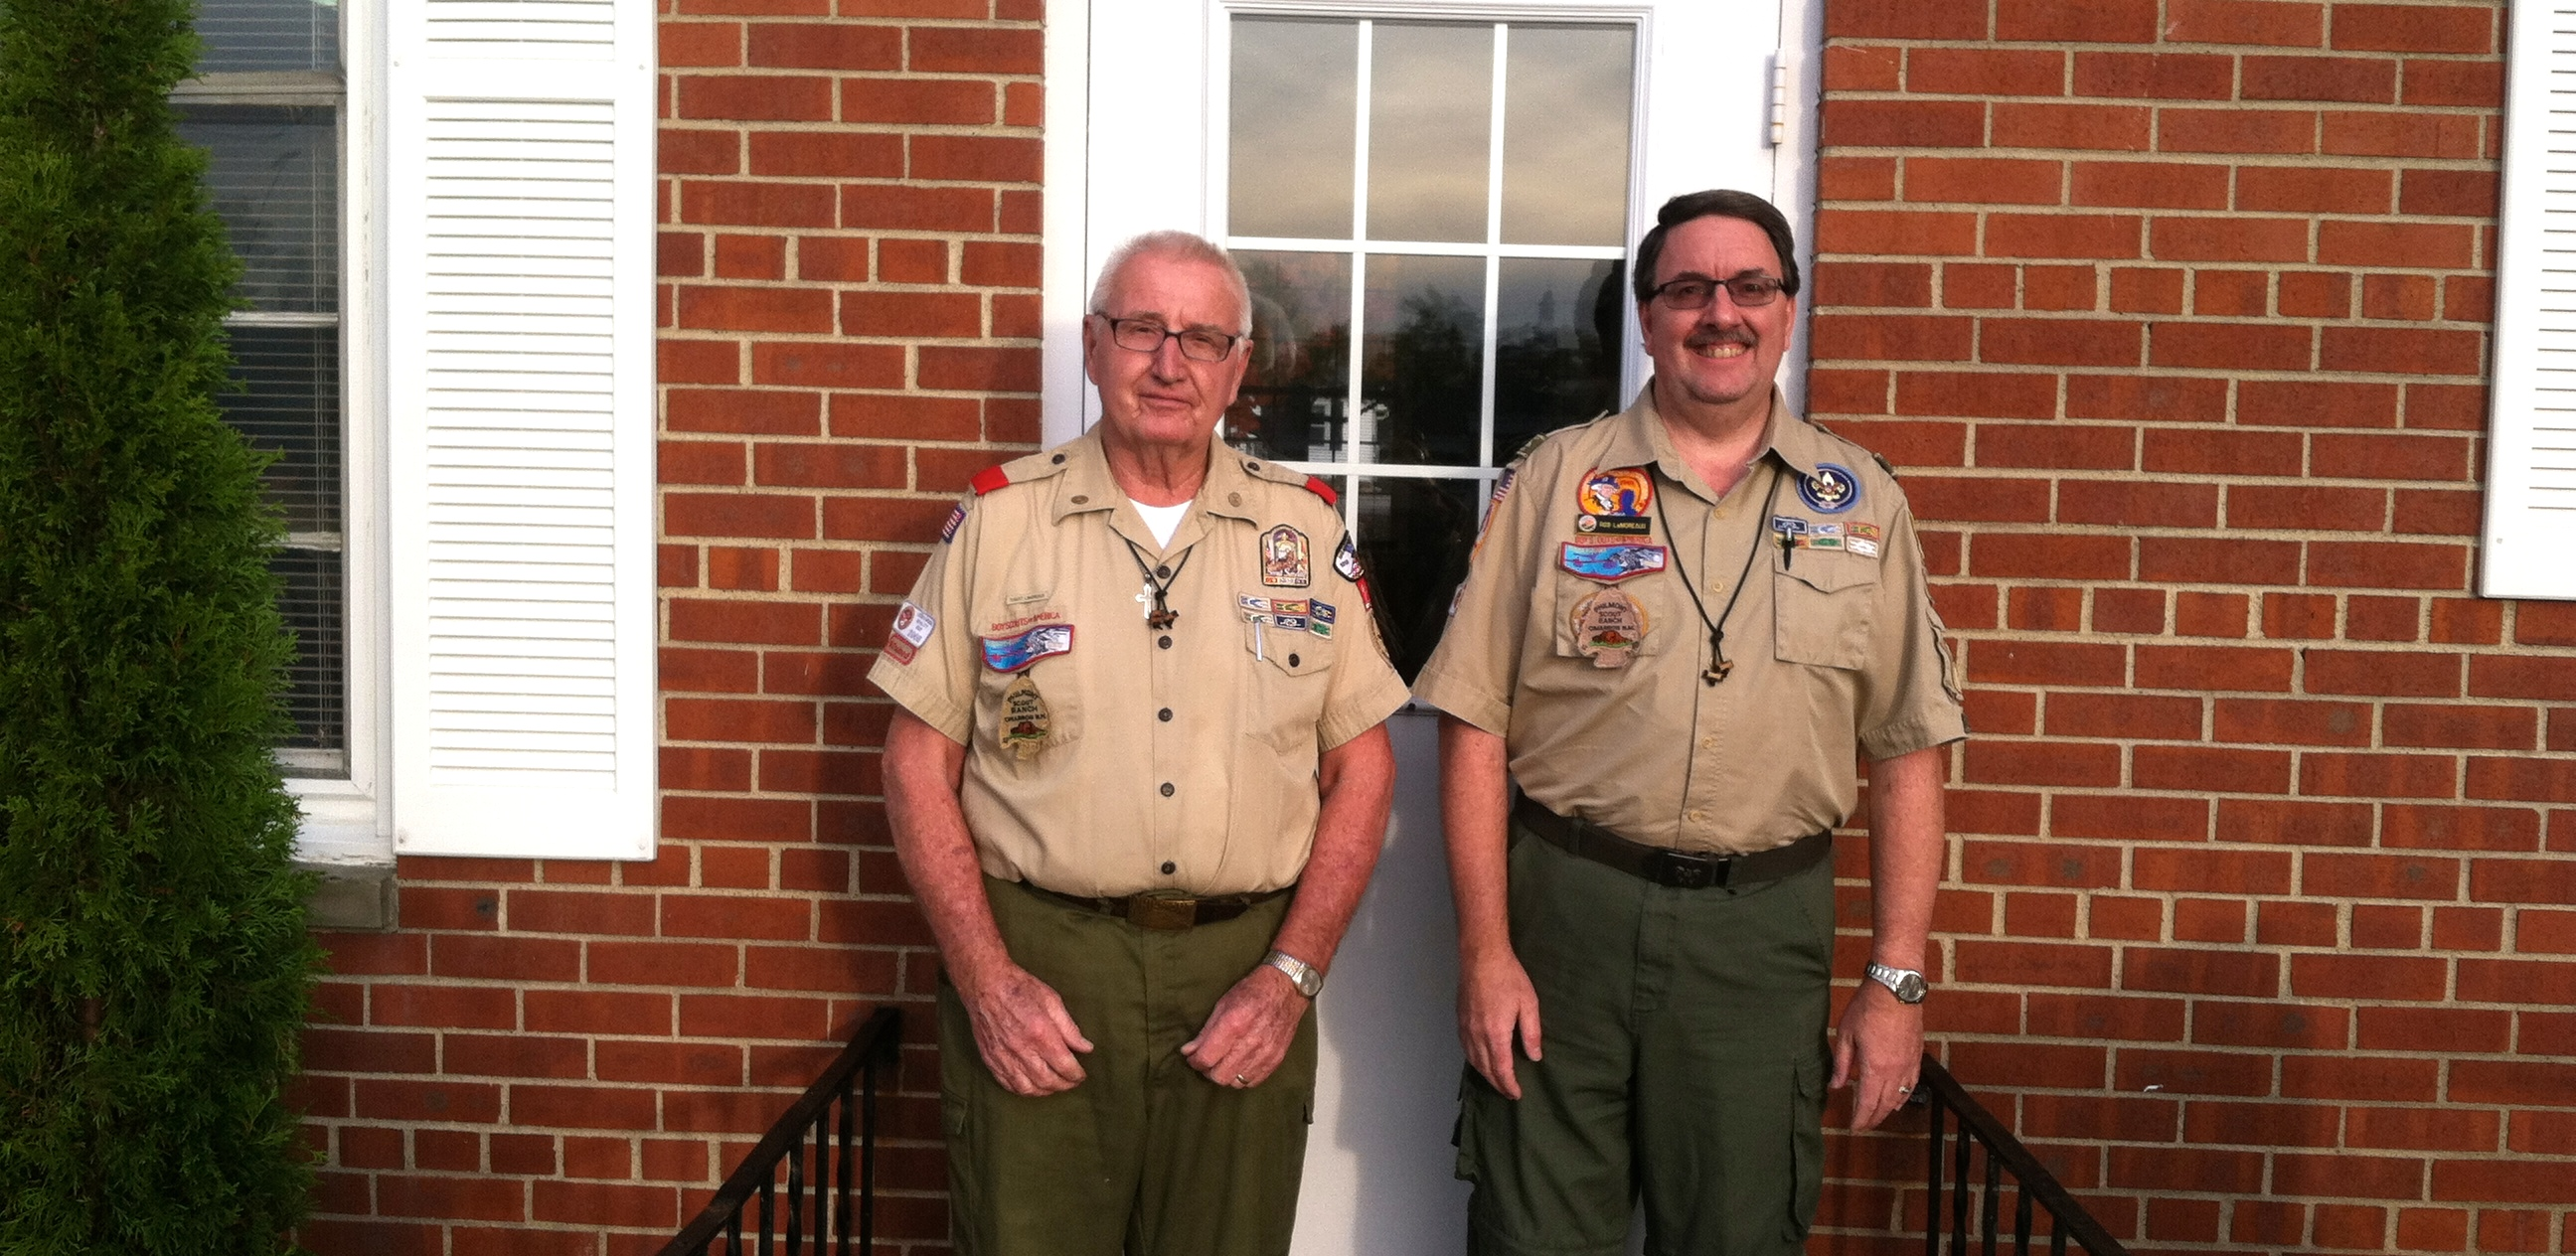 Passion for Scouting Troop Keeps 78-Year-Old Young